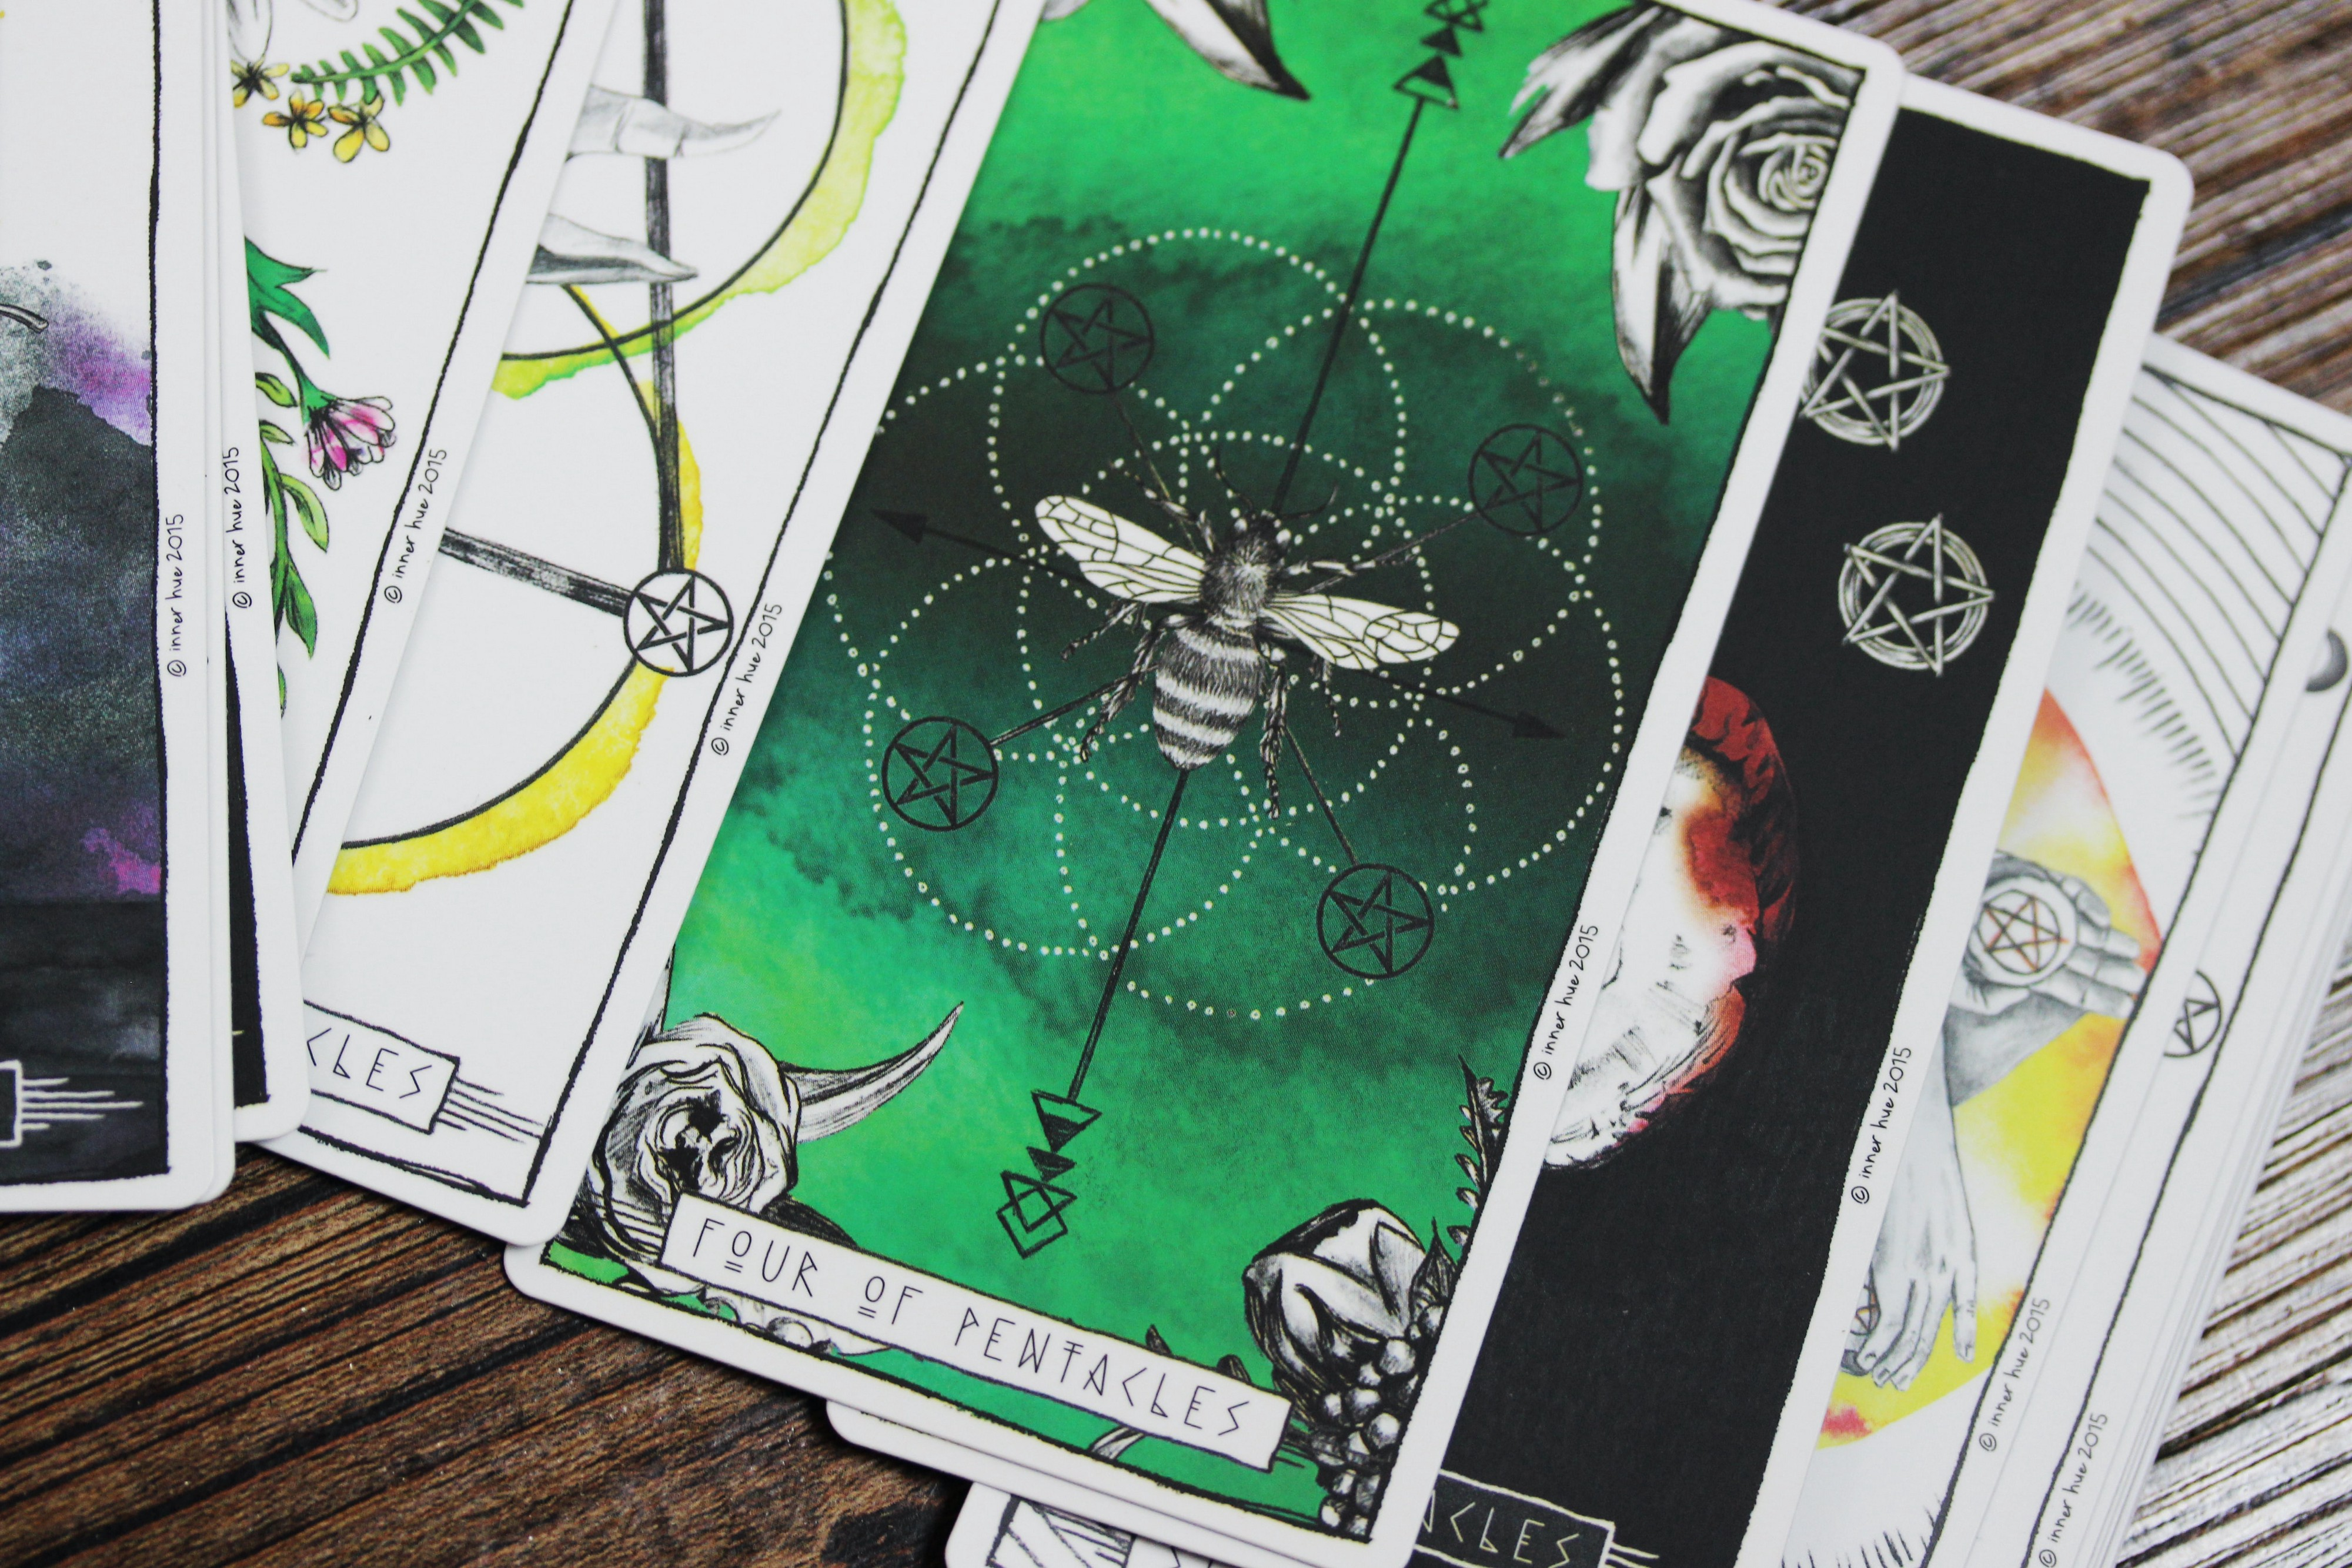 Tarot cards spread on a wooden surface; the main card that's visible is the Four of Pentacles, green with a bee on it.